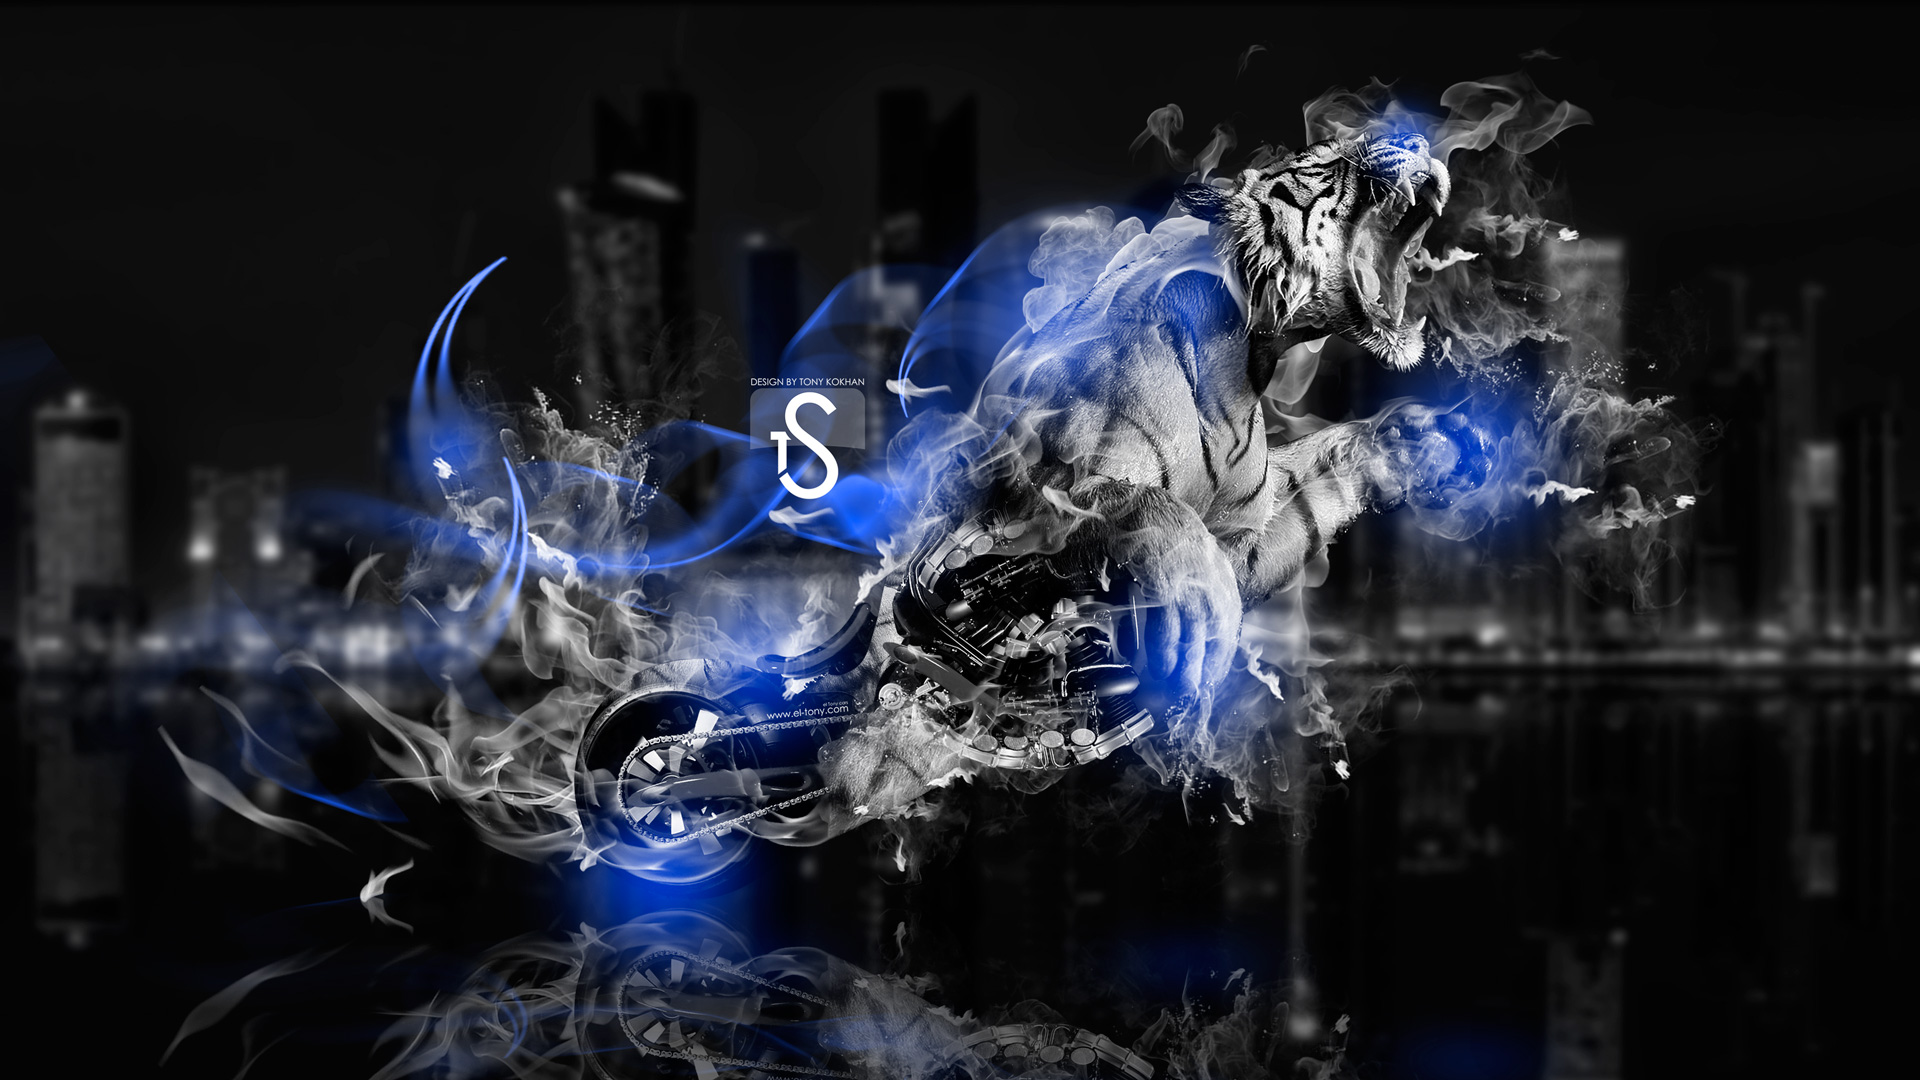 Free Download Blue Fire Horse Wallpaper Fantasy Moto Tiger Power Fire 1920x1080 For Your Desktop Mobile Tablet Explore 47 Blue Fire Horses Wallpapers Cool Fire Wallpapers Horse Wallpaper For